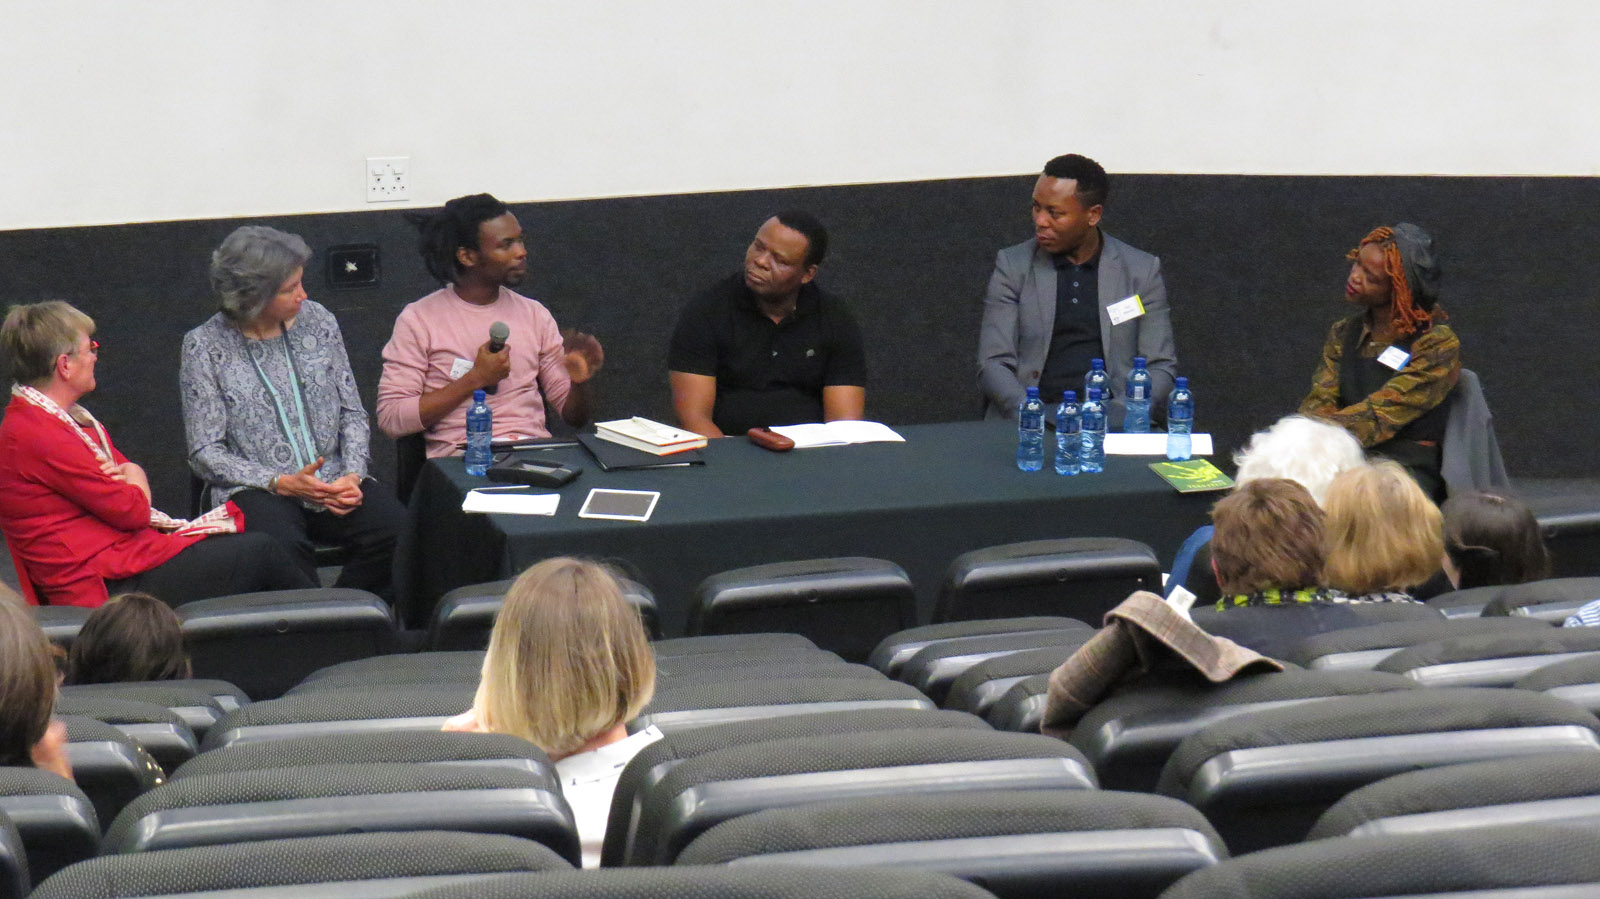 Click the image for a view of: Muzi Gigaba speaking at the roundtable: South African book arts as a democratic force. Sunday 26 March